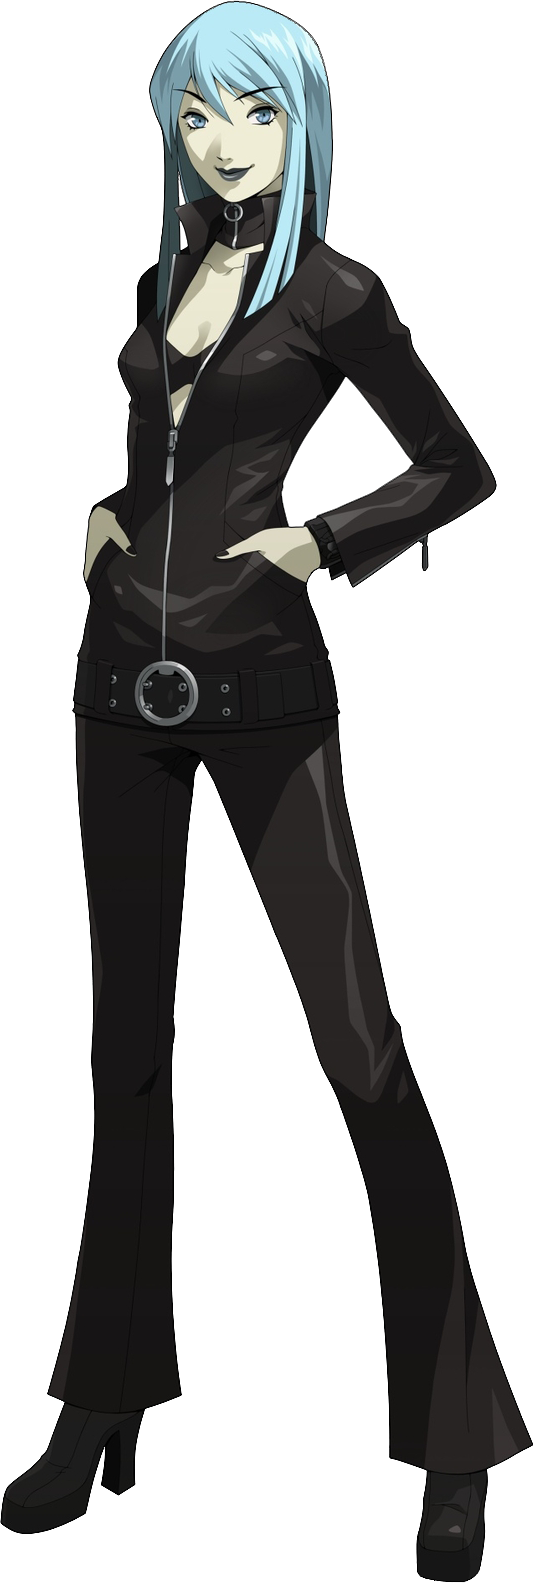 Anime Character 2 : Persona smt video game art pinterest anime